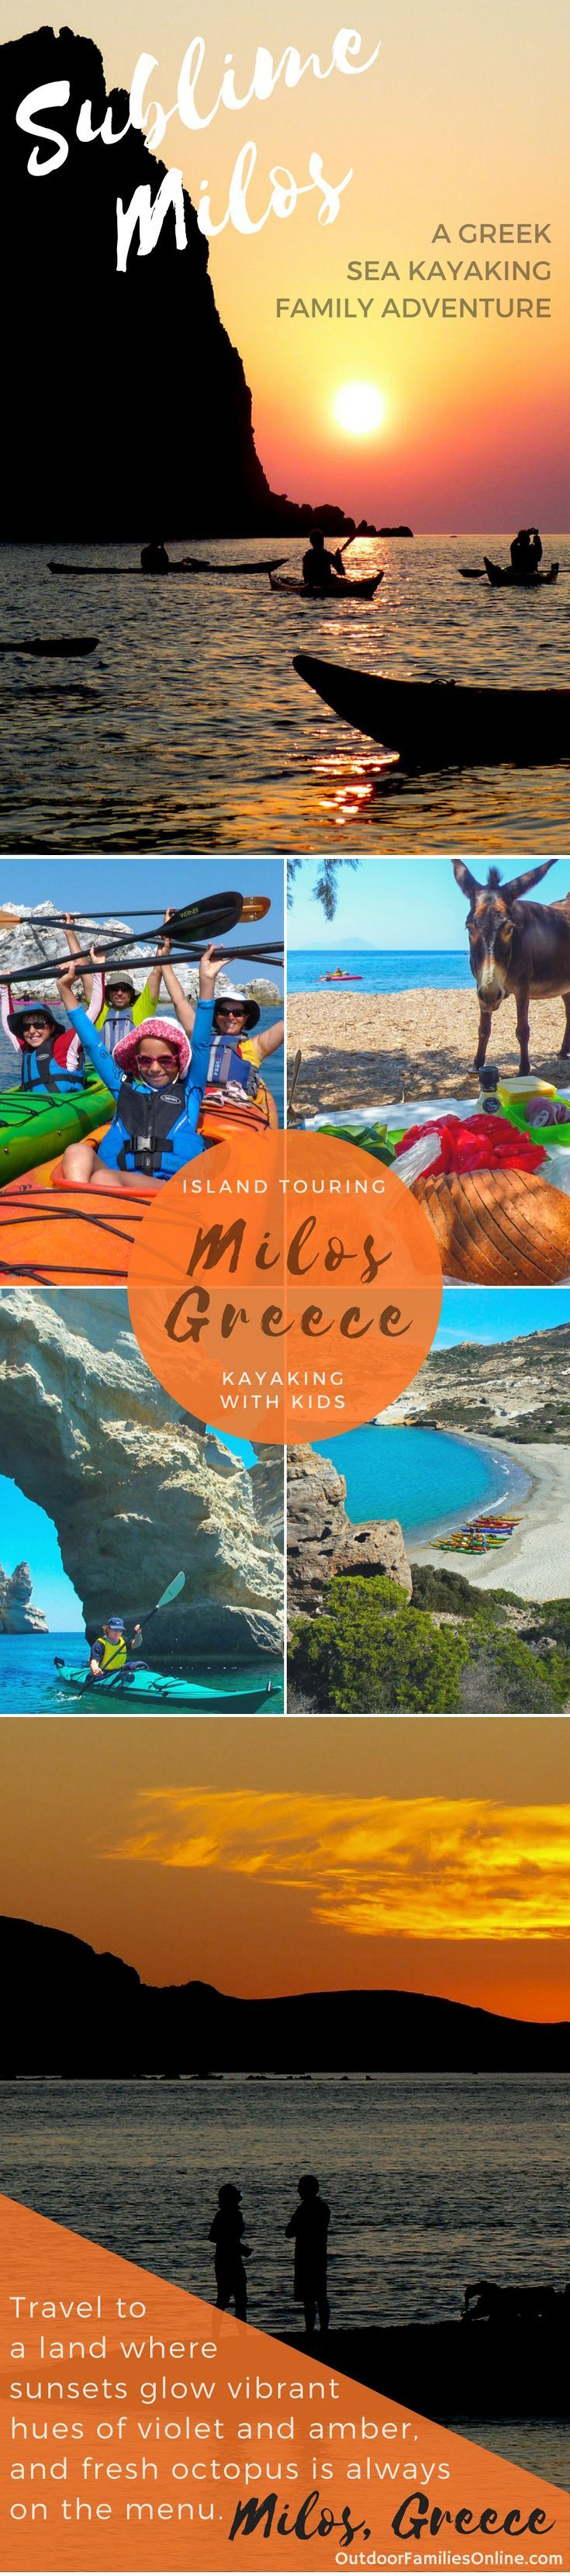 Travel to a land where sunsets glow vibrant hues of violet and amber, and fresh octopus is always on the menu; a sea kayaking adventure to Milos, Greece.